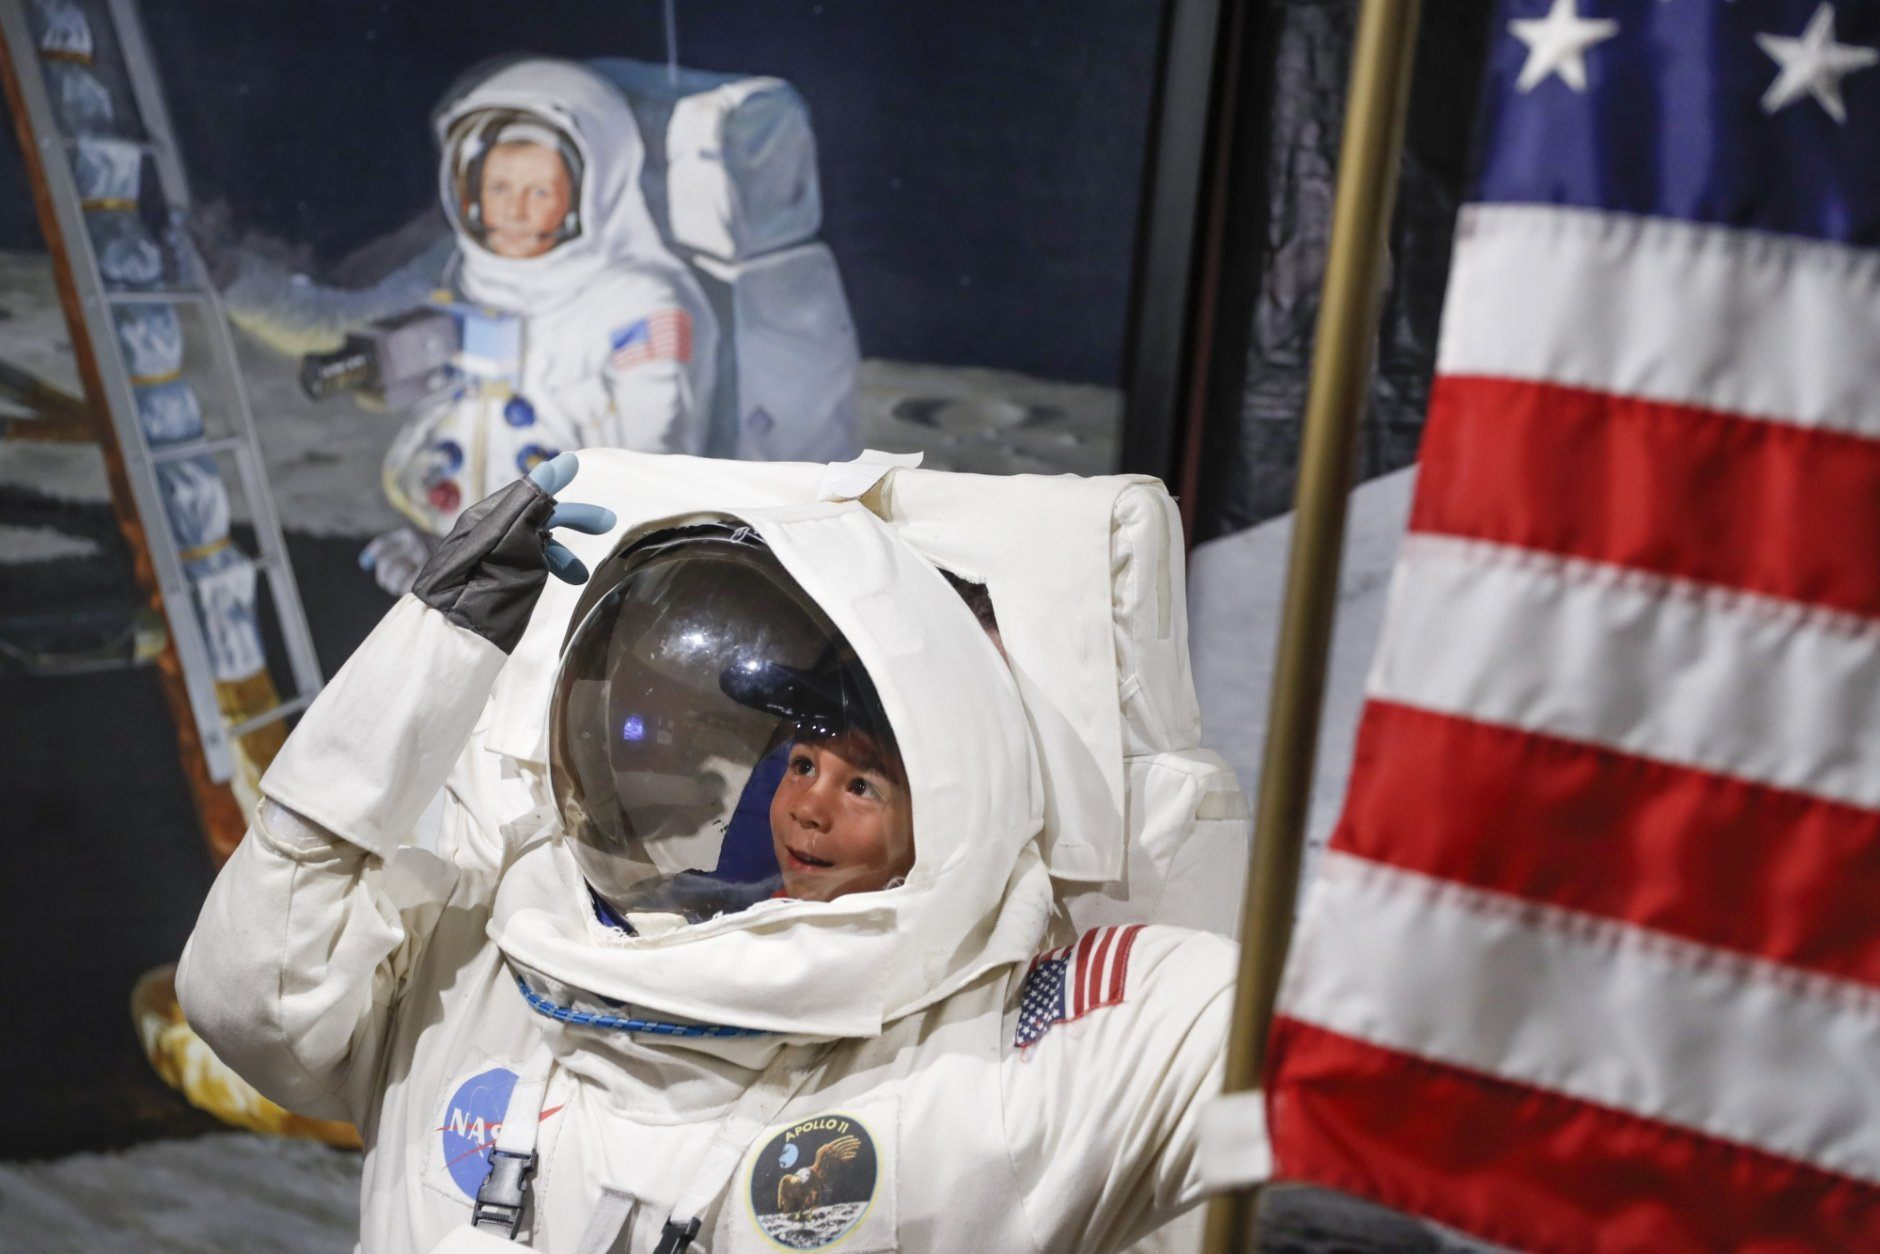 Visitors pose for photos beside a portrait of Neil Armstrong at the Armstrong Air & Space Museum as special events are underway for visitors commemorating the 50th anniversary of the first moon landing, Saturday, July 20, 2019, in Wapakoneta, Ohio. (AP Photo/John Minchillo)